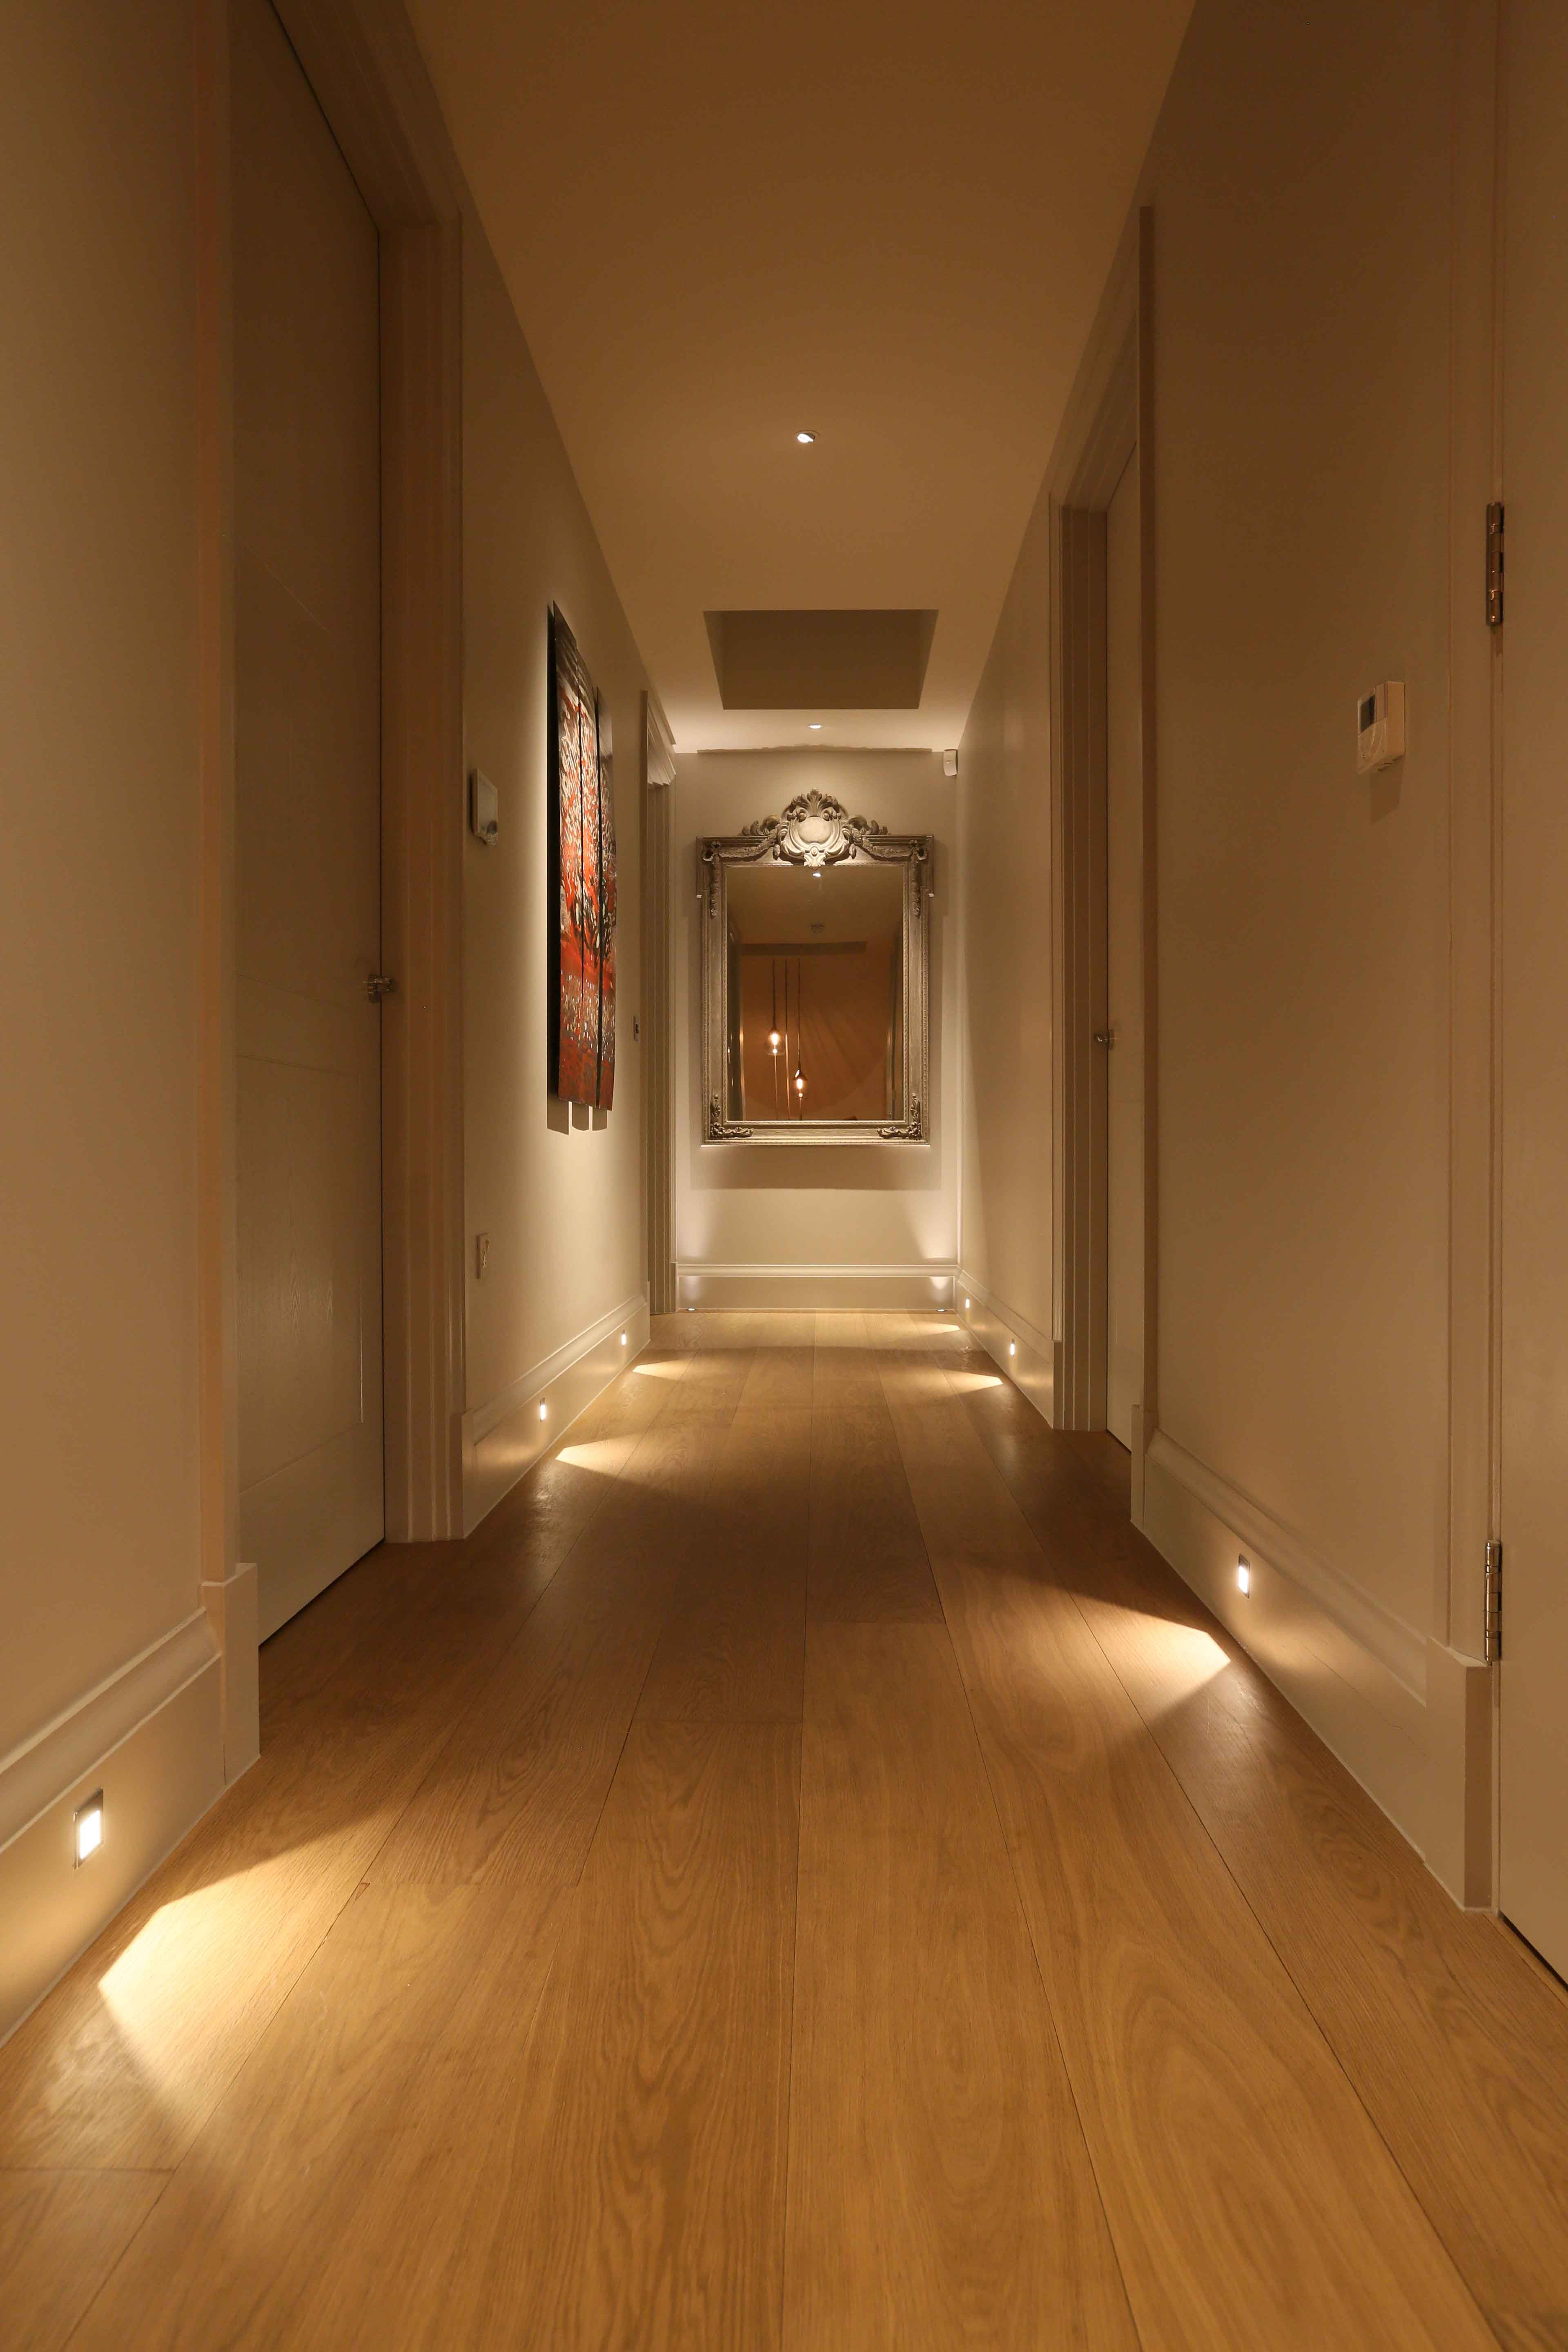 Lighting Basement Washroom Stairs: Corridor And Stair Lighting By John Cullen